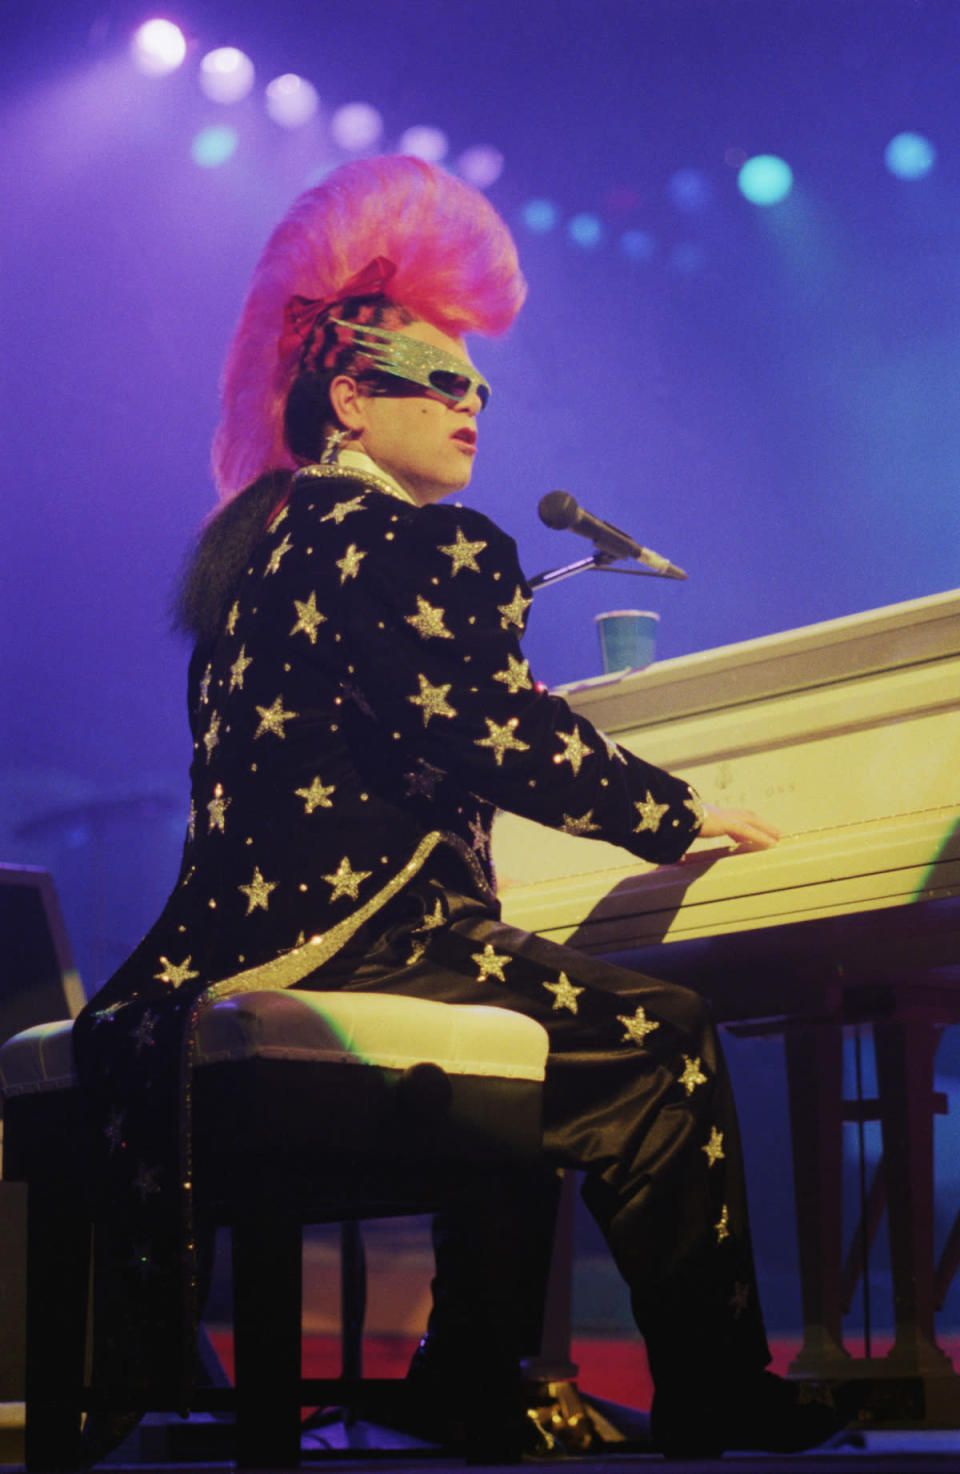 <p>Elton John performs wearing a purple mohawk and velvet star suit in 1986. (Photo: Getty Images) </p>